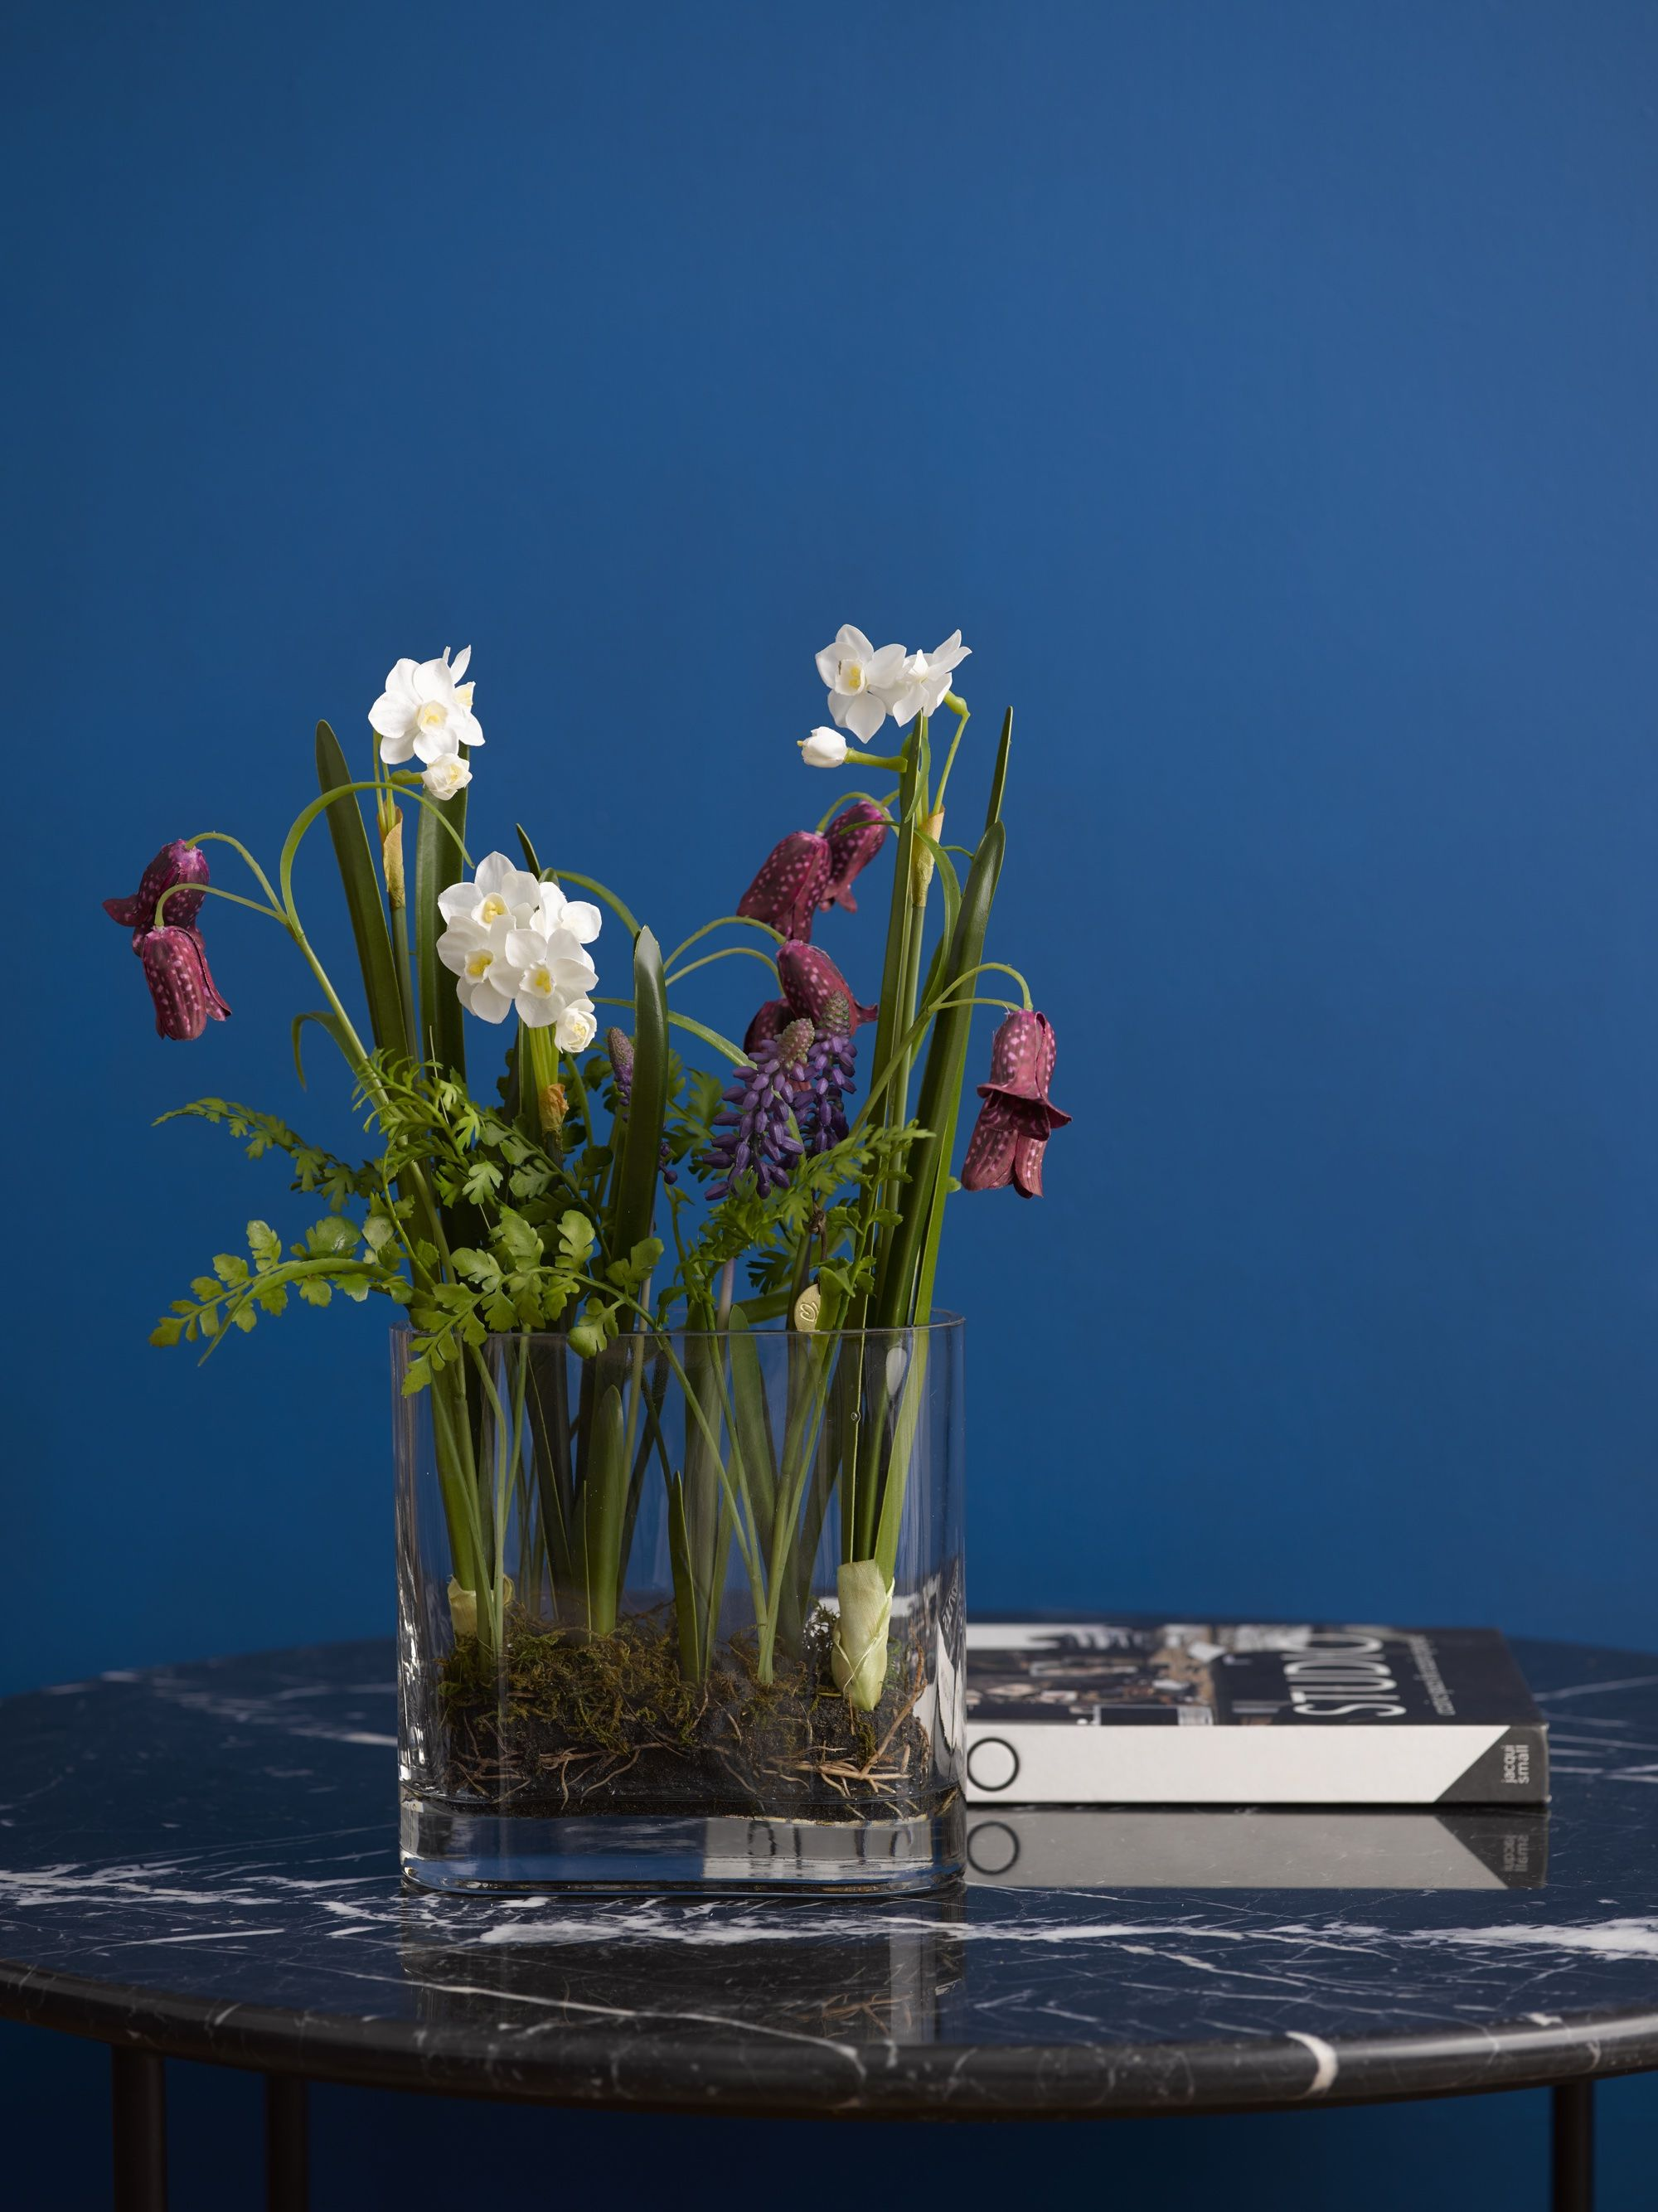 La Redoute will now stock a luxury artificial plant and flower range